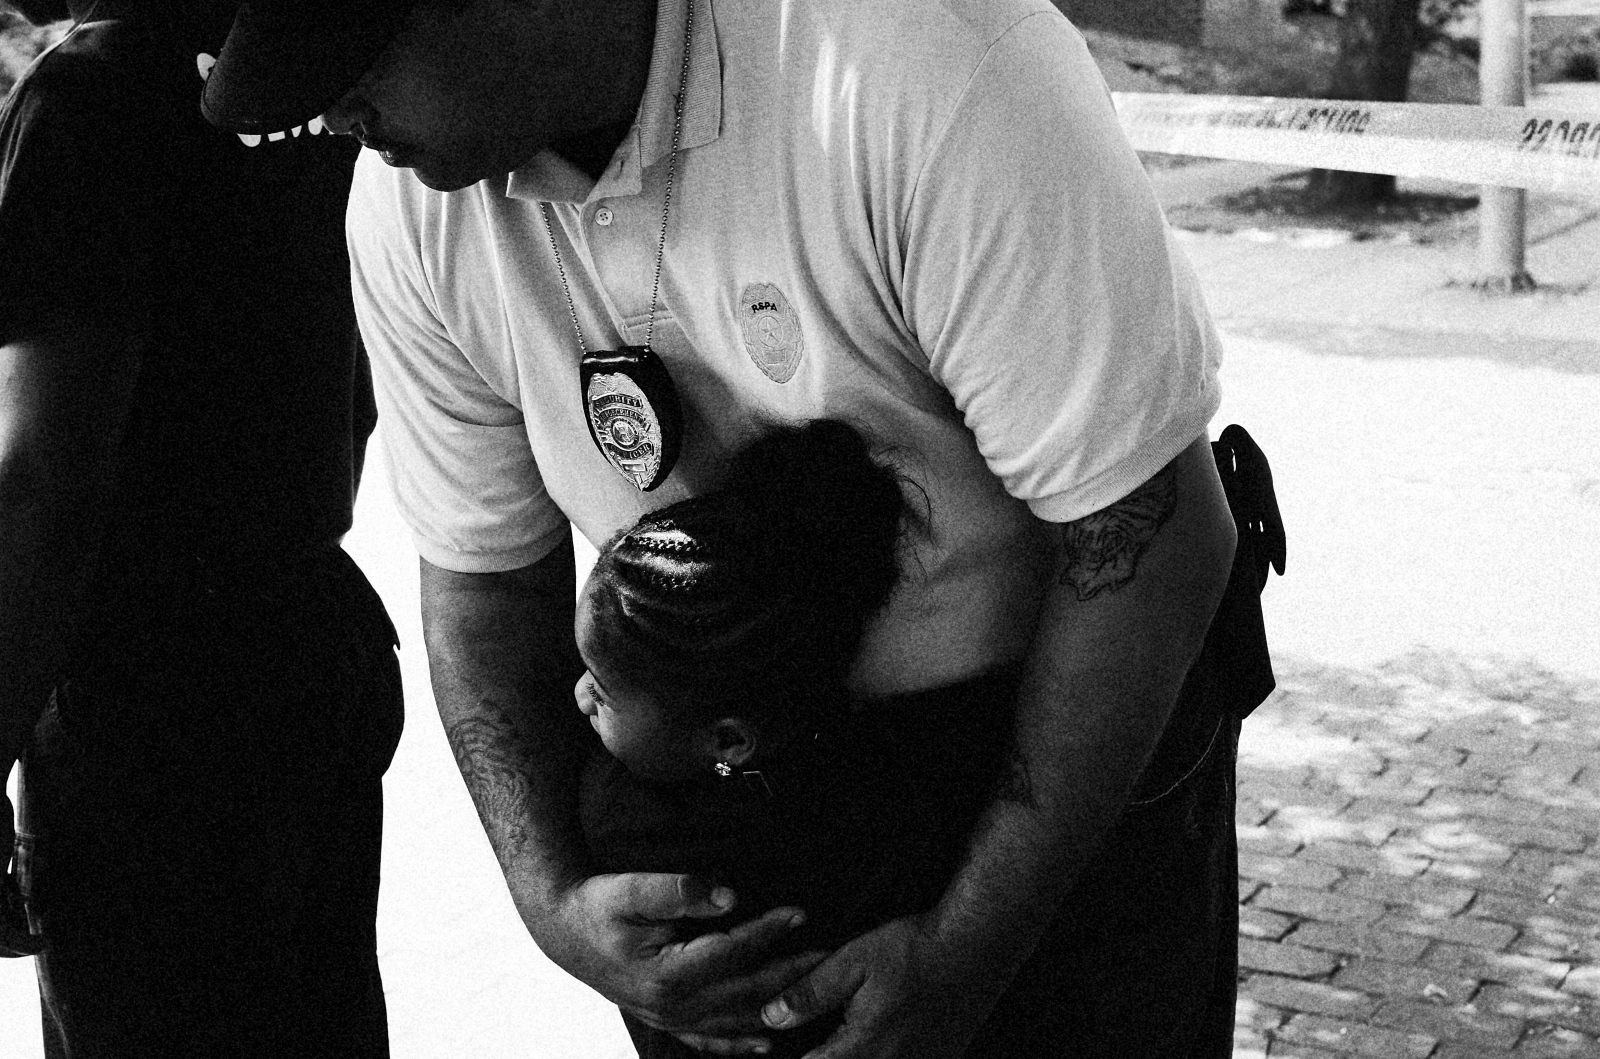 A young student runs into the arms of a Baltimore City School Police officer following a homicide across from her school in West Baltimore on August 12, 2013.